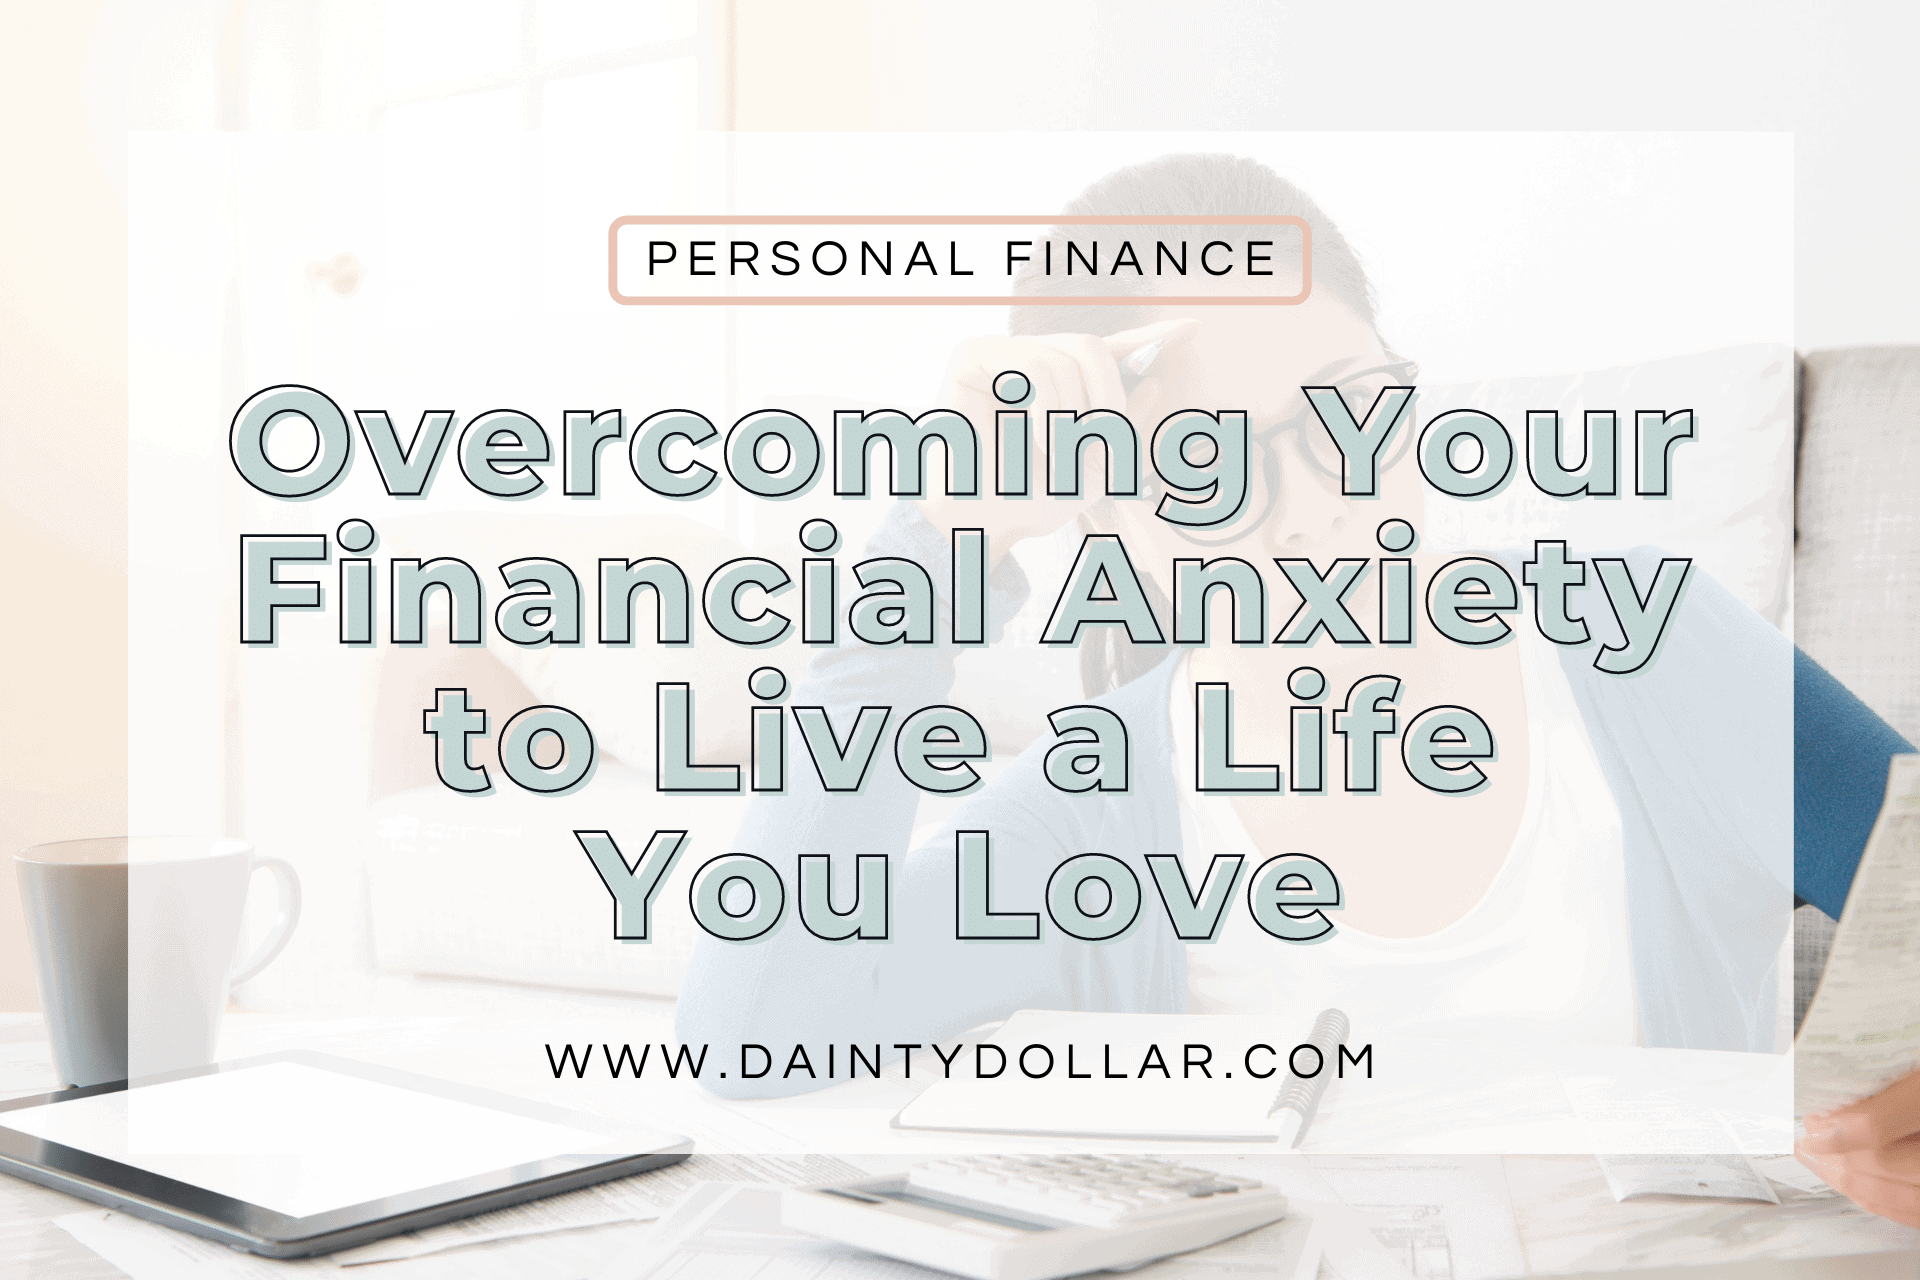 Overcoming Your Financial Anxiety to Live a Life You Love - Dainty Dollar